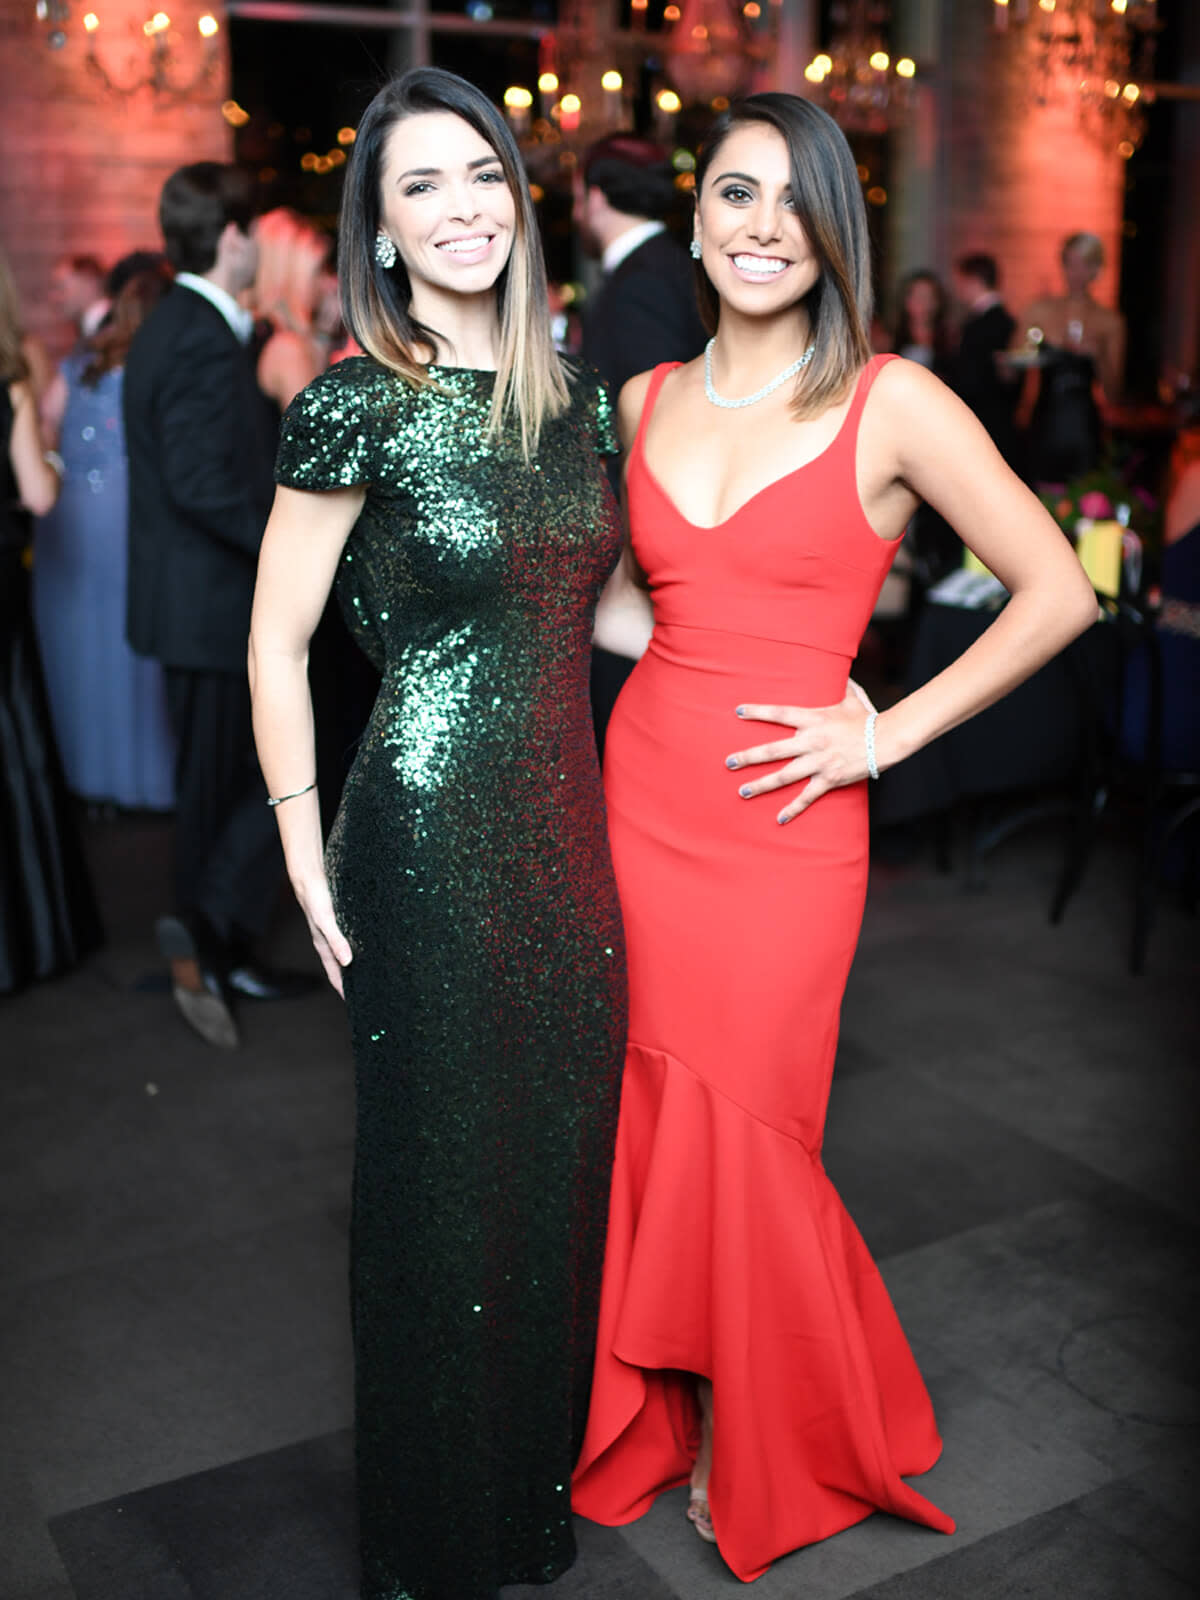 Jungle Book Gala, Lynsey Jackson, Justine Alanis